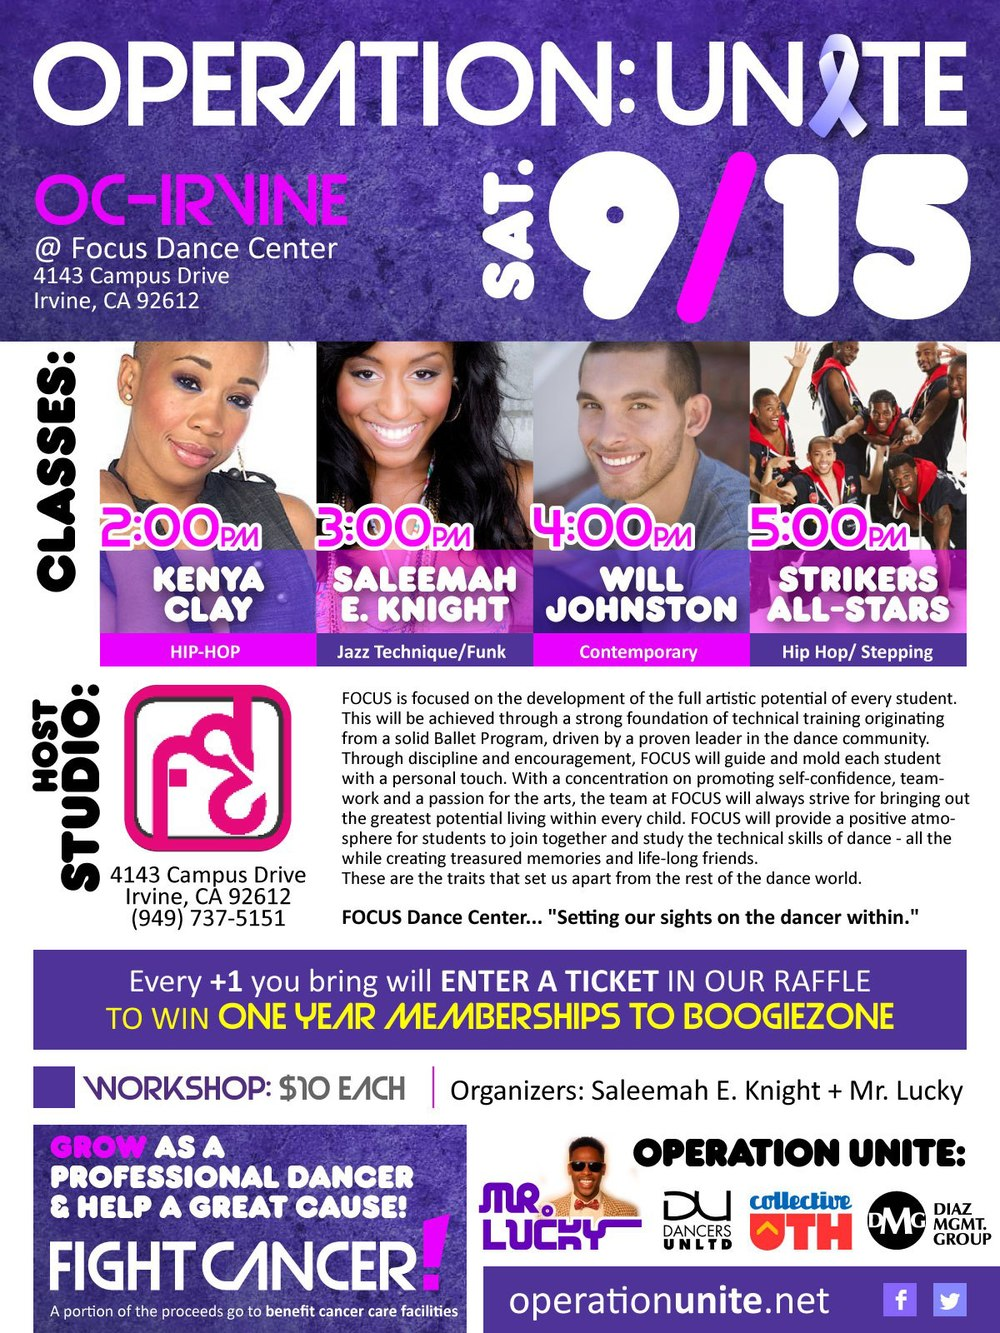 17 Operation Unite Workshop Series with Kenya Clay, Saleemah E. Knight, Will Johnston and Stikers All-Stars.jpg